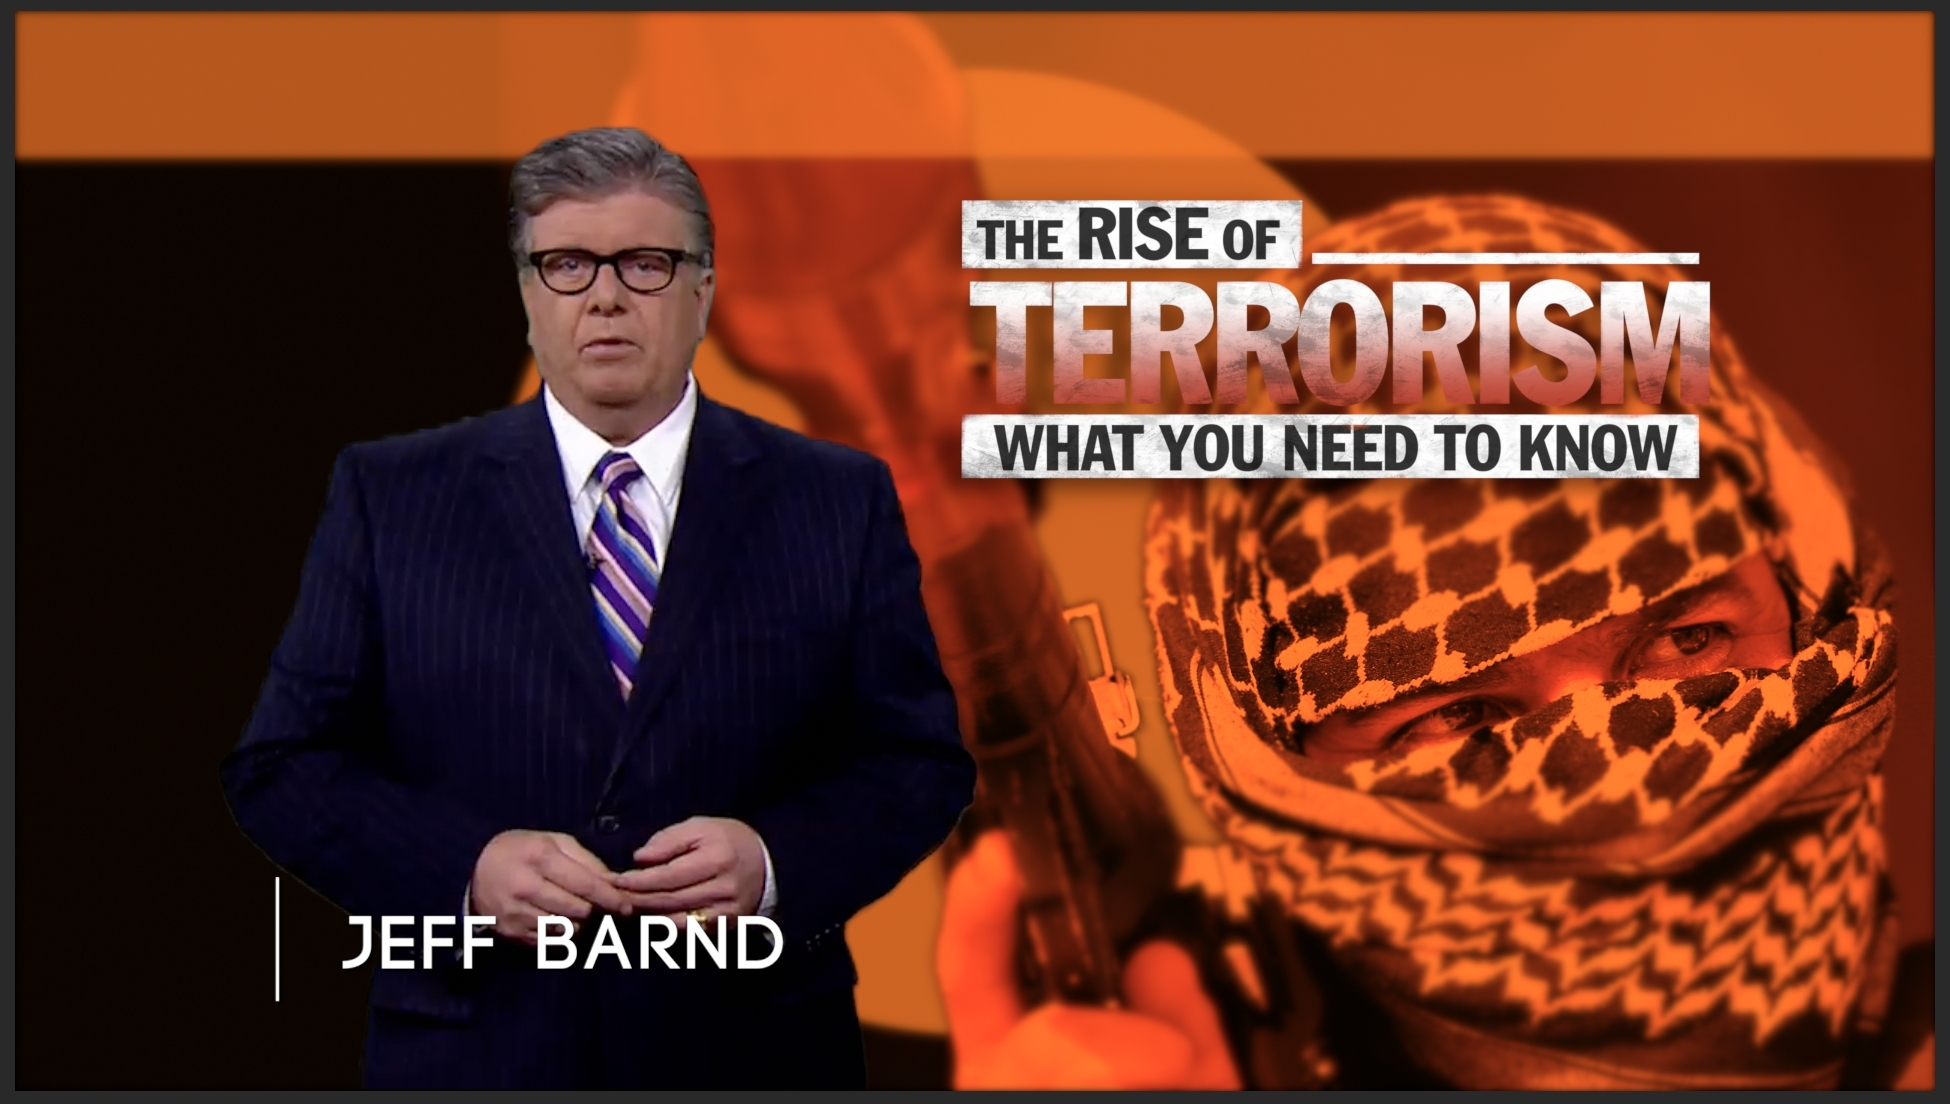 """Cisneros Media Distribution announced the U.S. premiere of its first production in English: """"The Rise of Terrorism, What You Need to Know"""" airs nationwide in April via Sinclair Broadcast Group. (Photo: Business Wire)"""